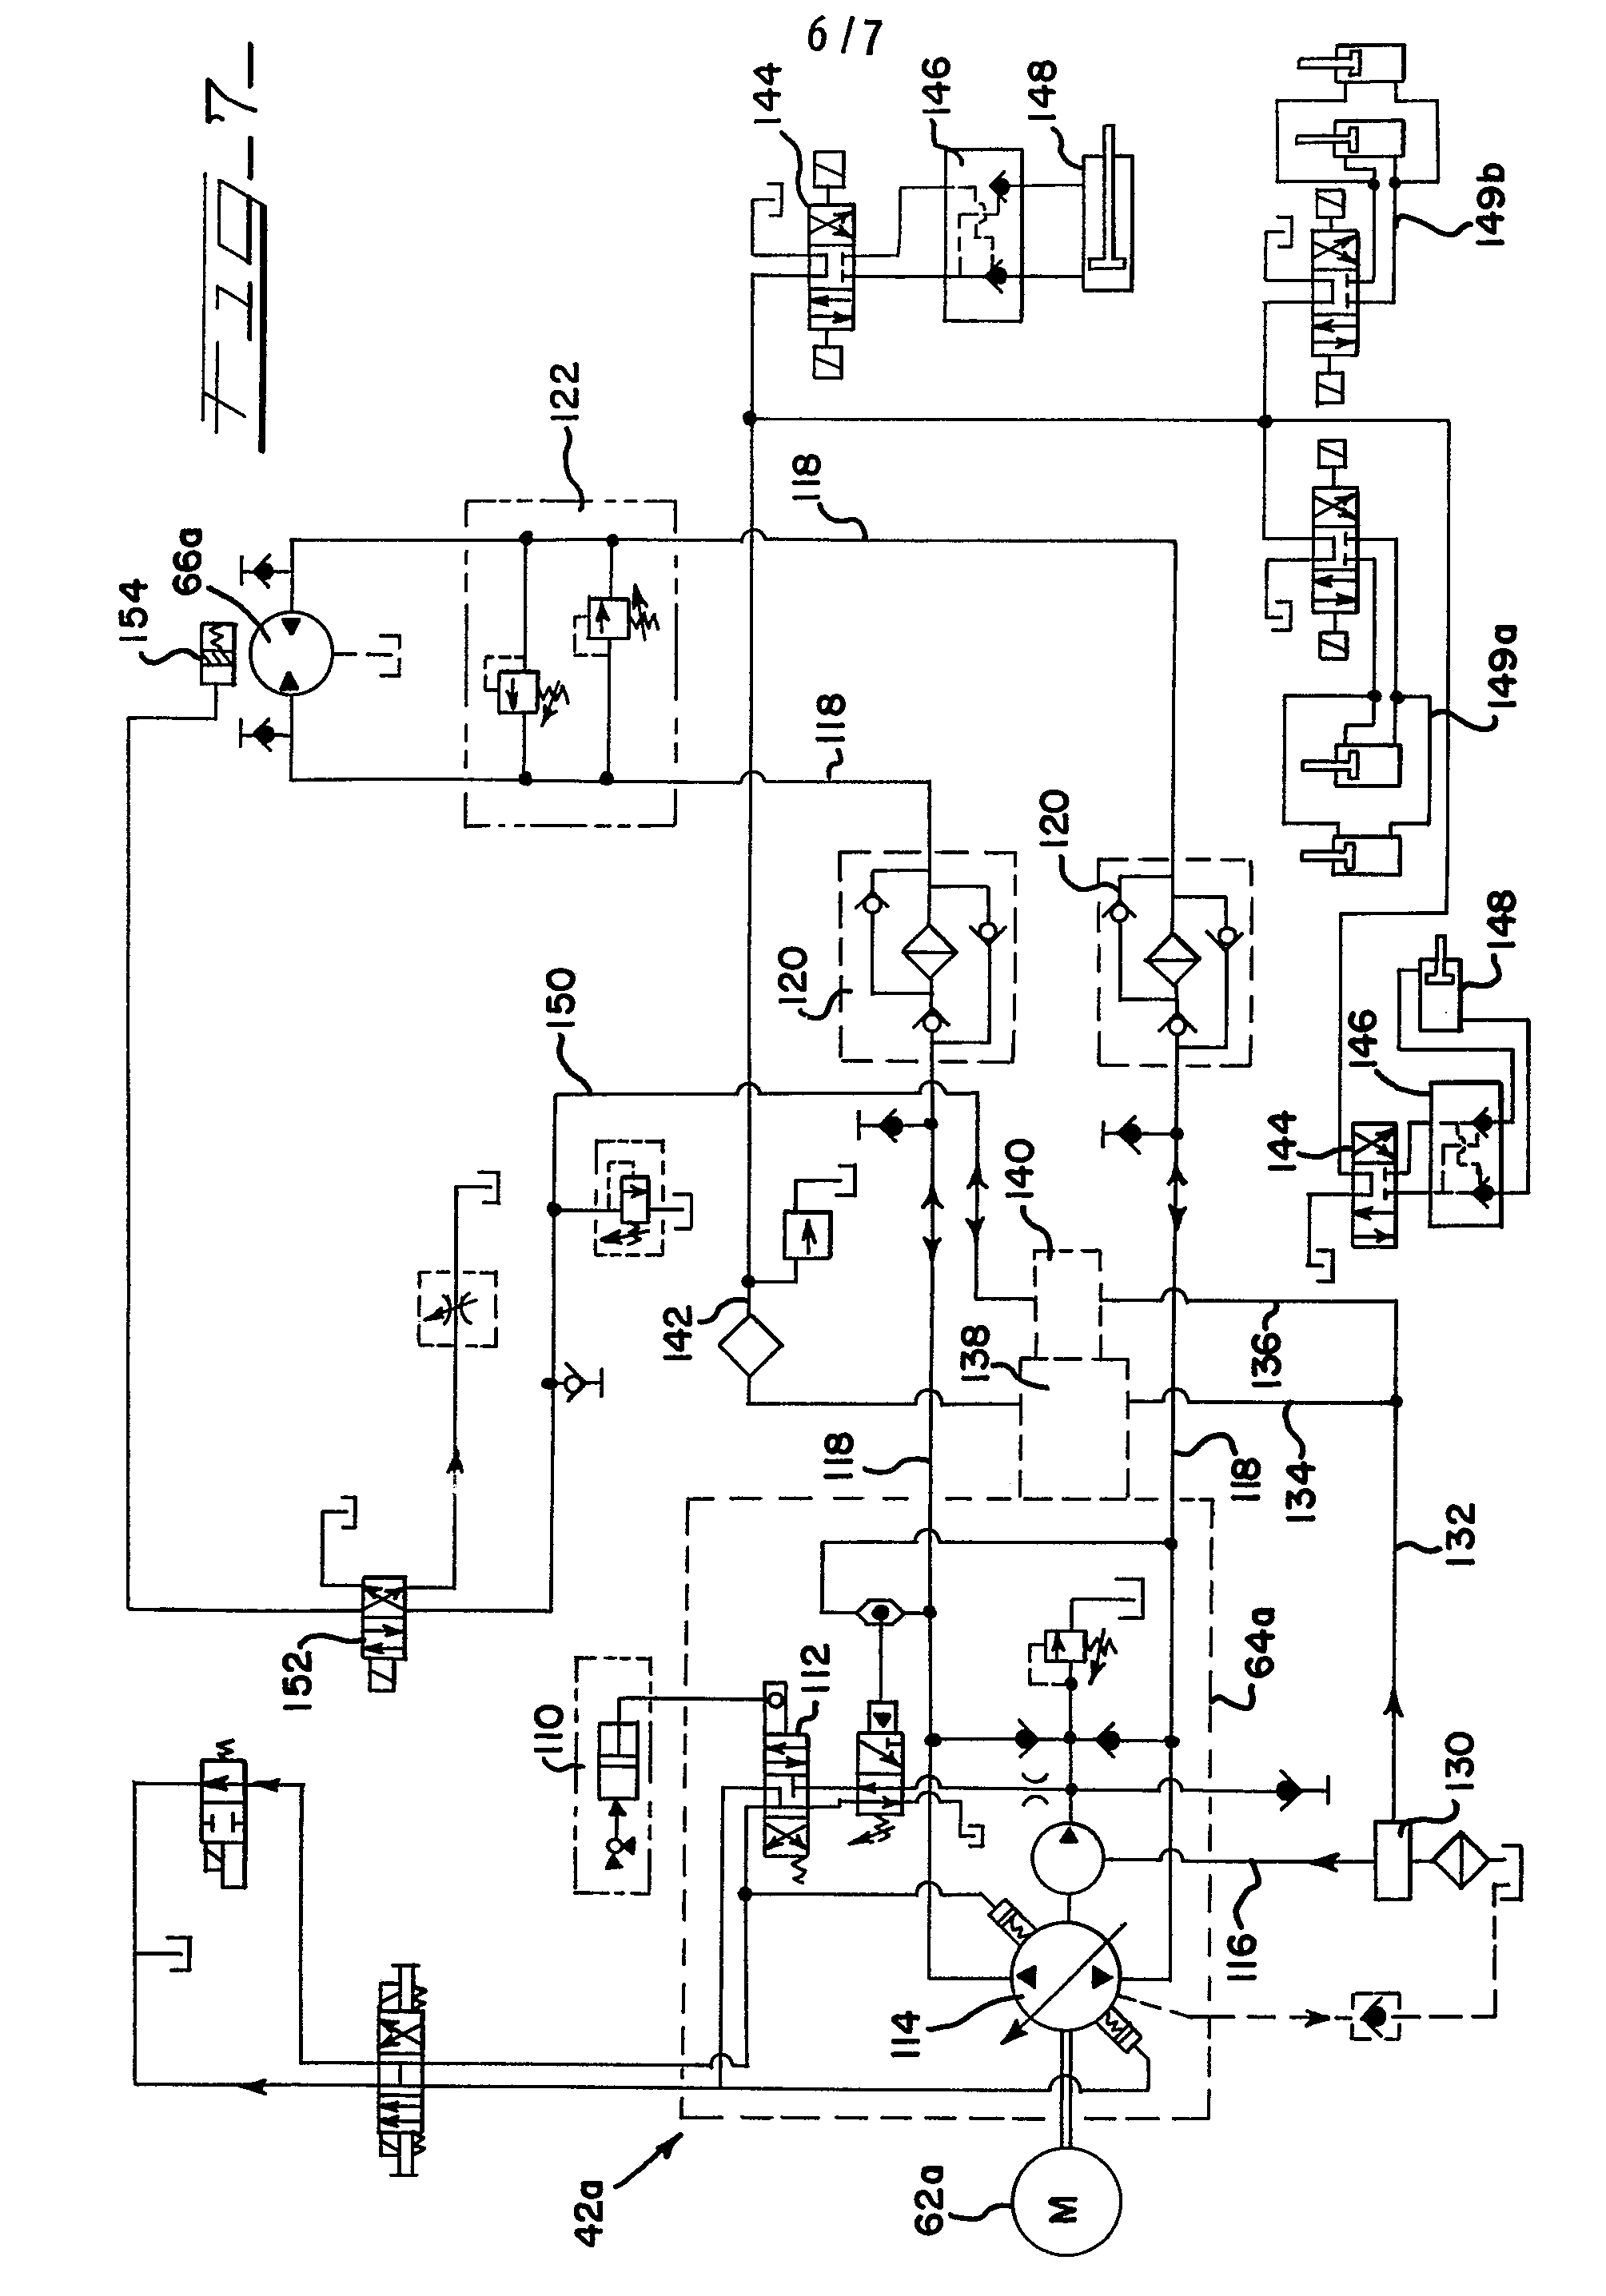 whirlpool ice maker wiring schematic